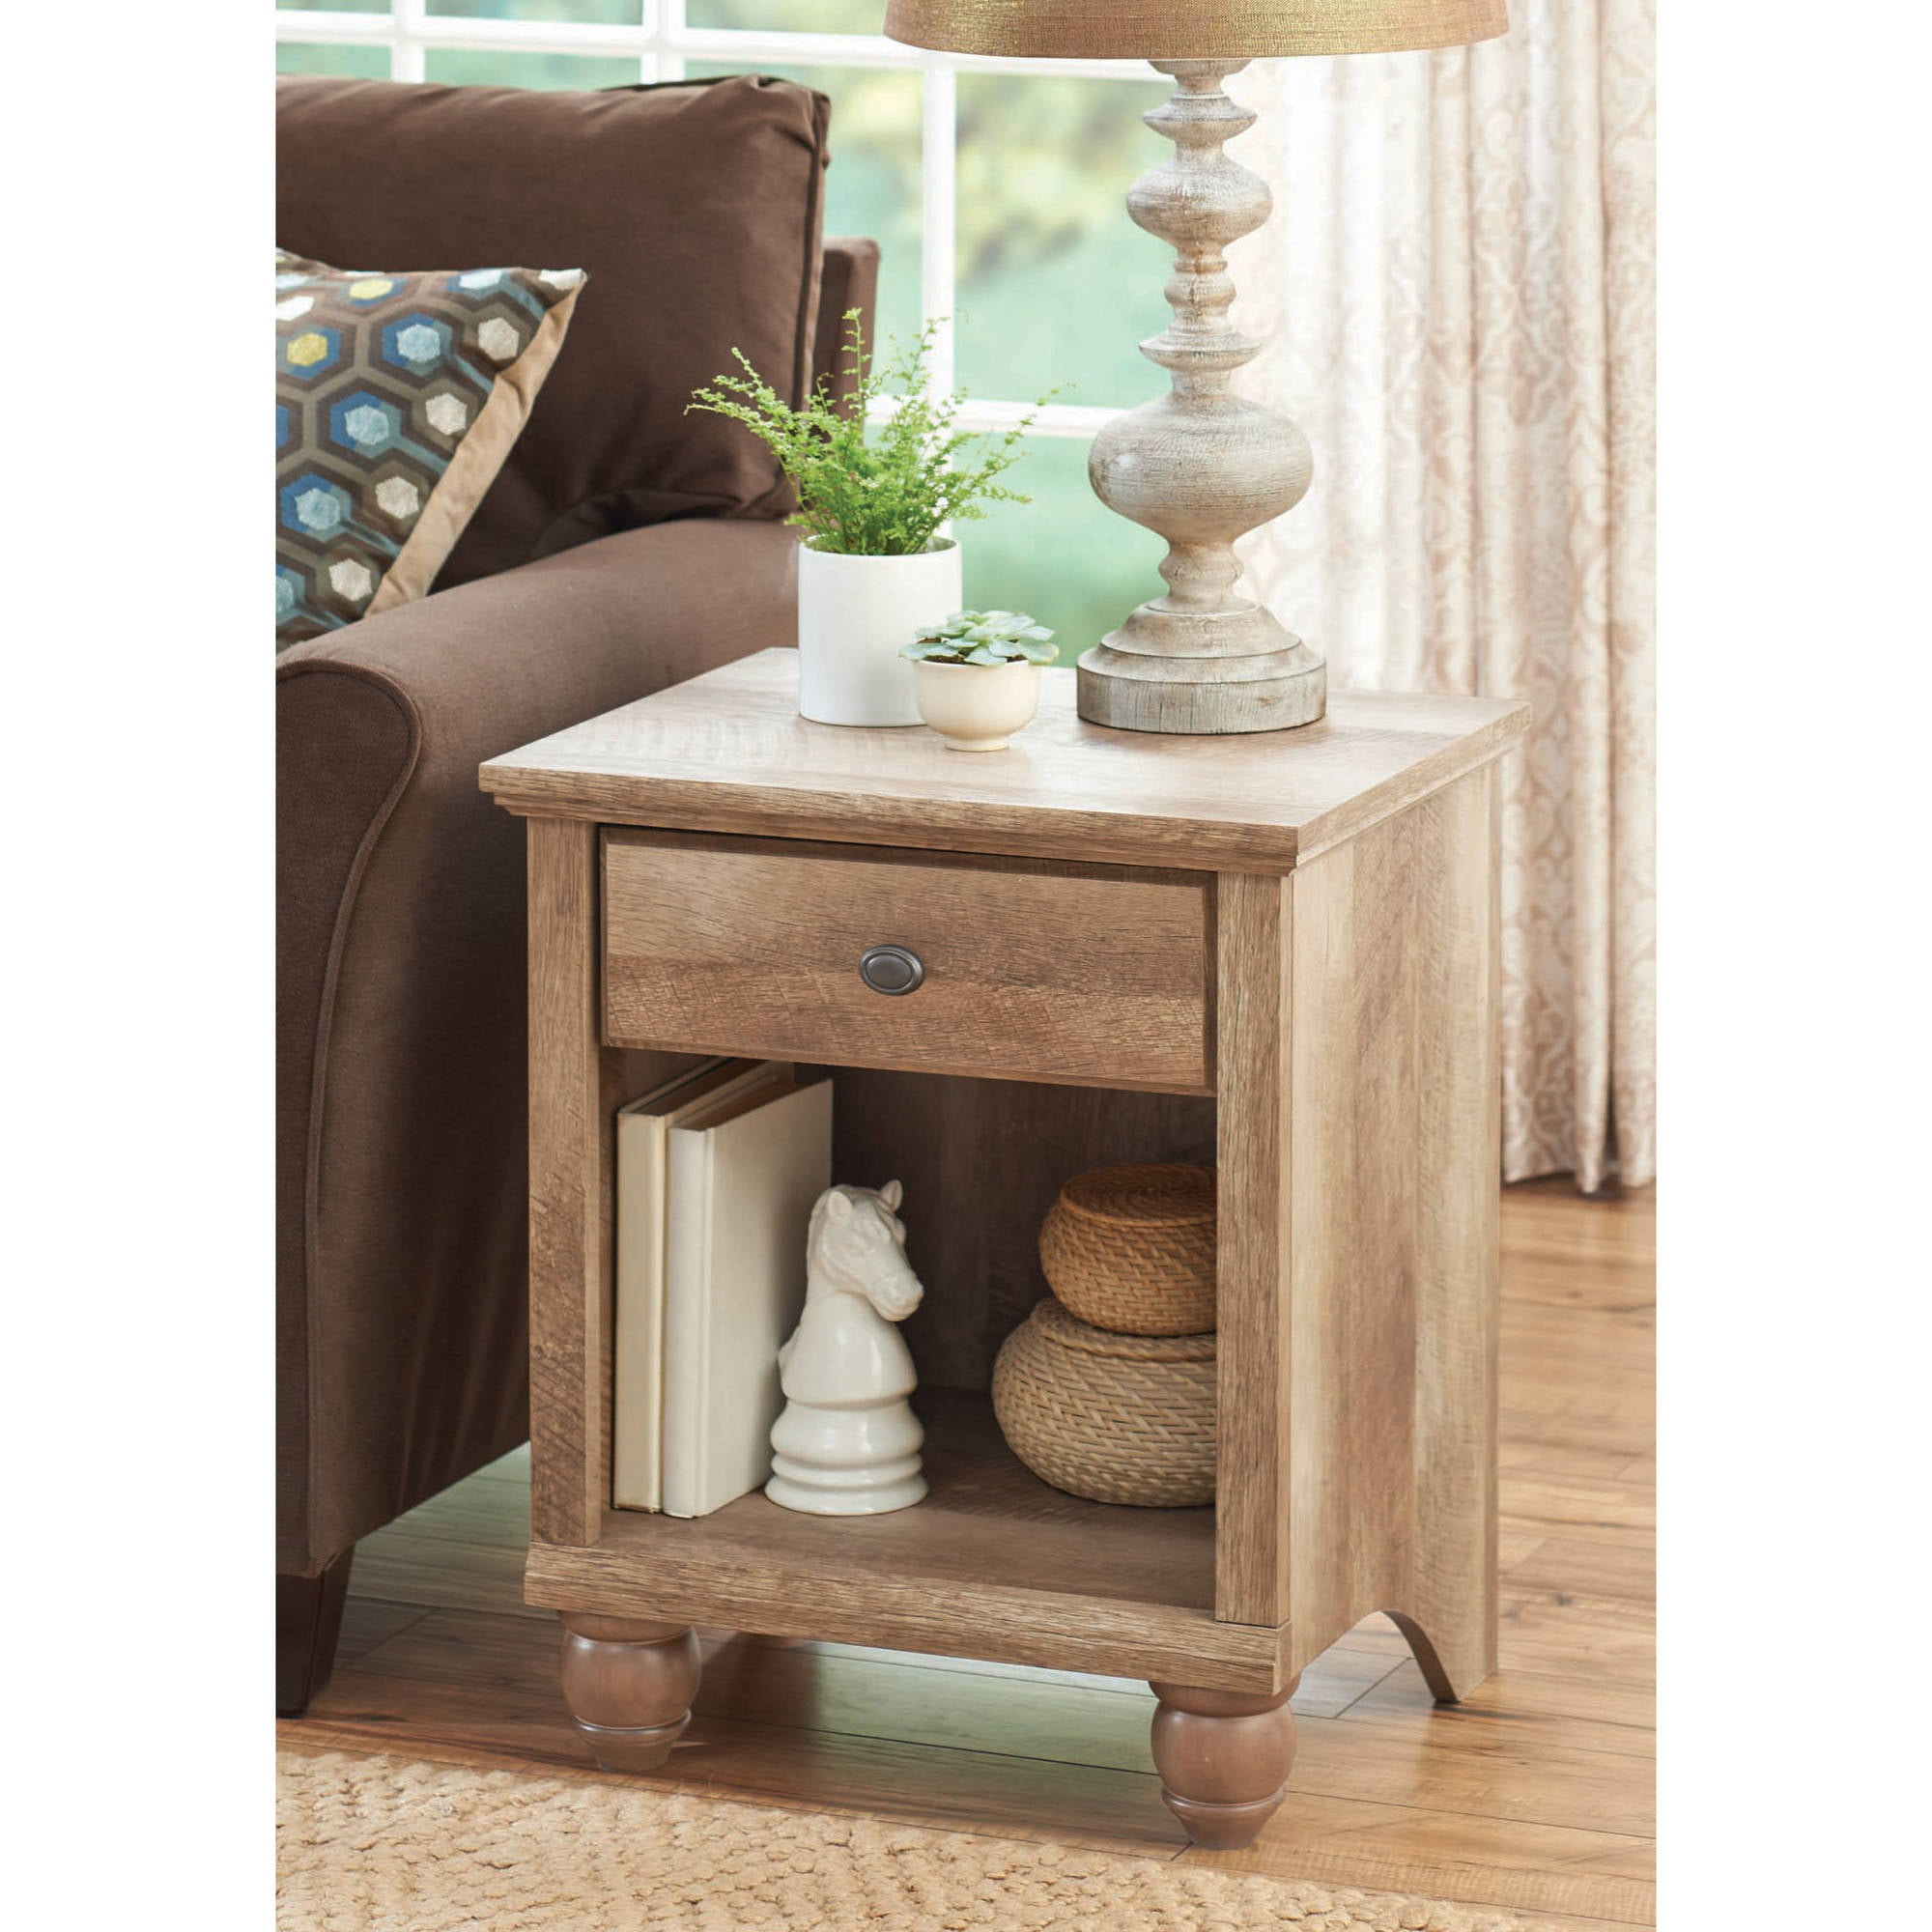 Better Homes and Gardens Crossmill Accent Table, Multiple Finishes by Sauder Woodworking